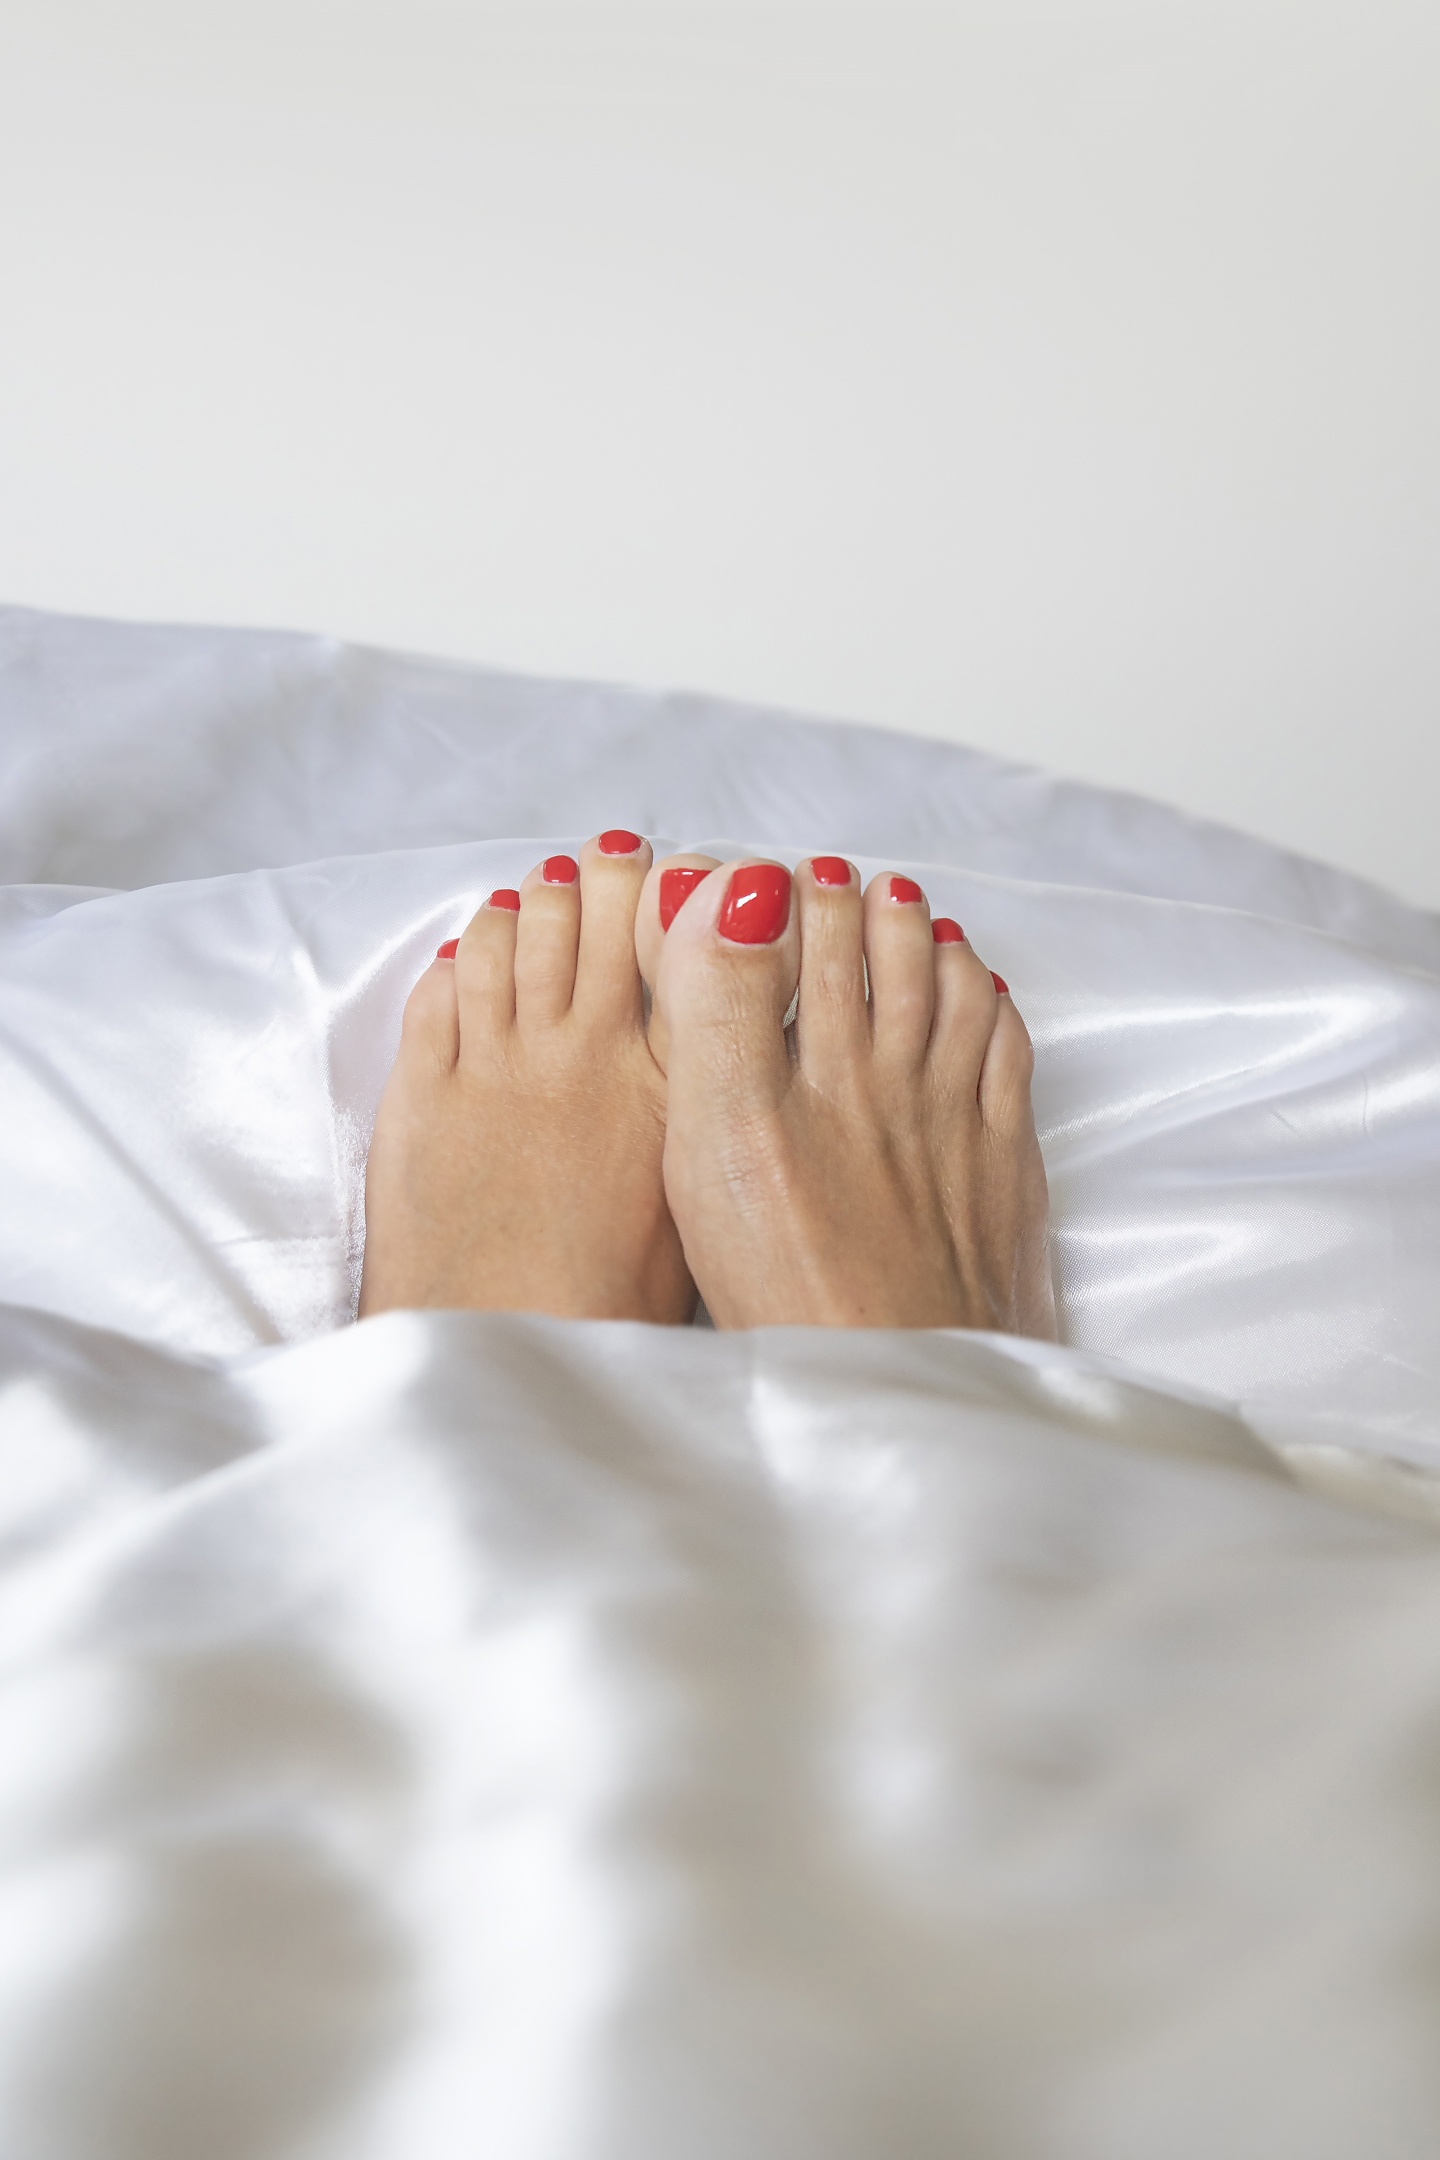 17. Red painted toe nails